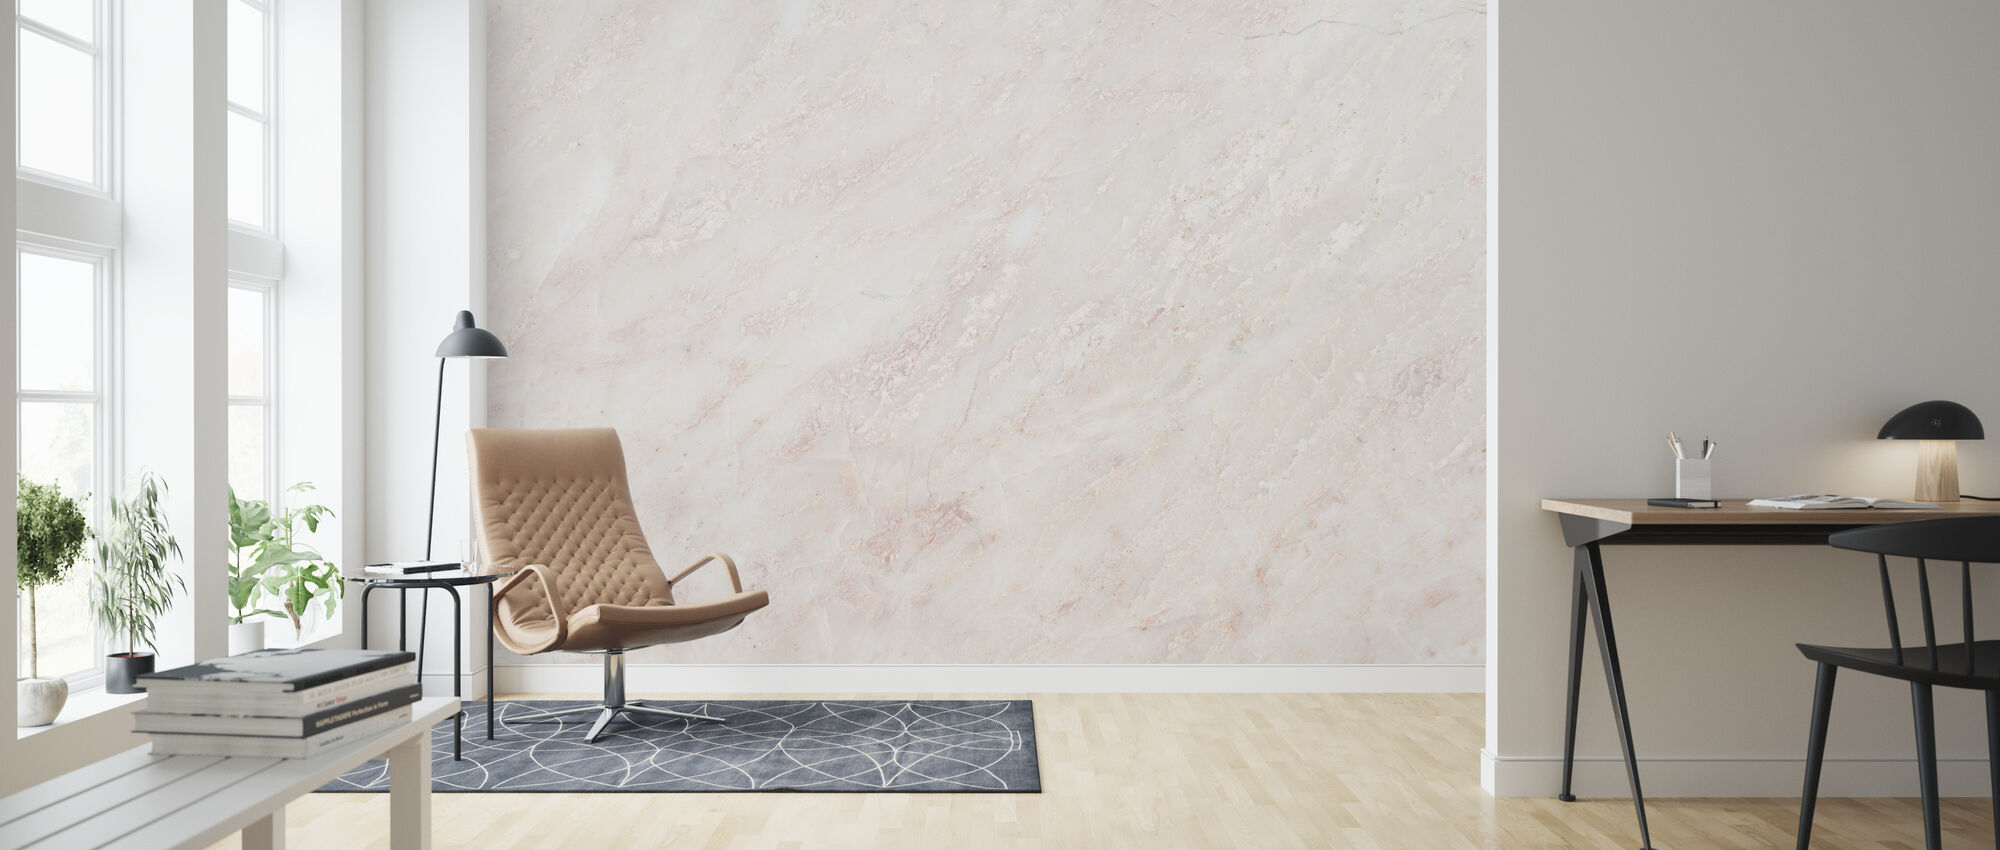 Marble Wall - Wallpaper - Living Room